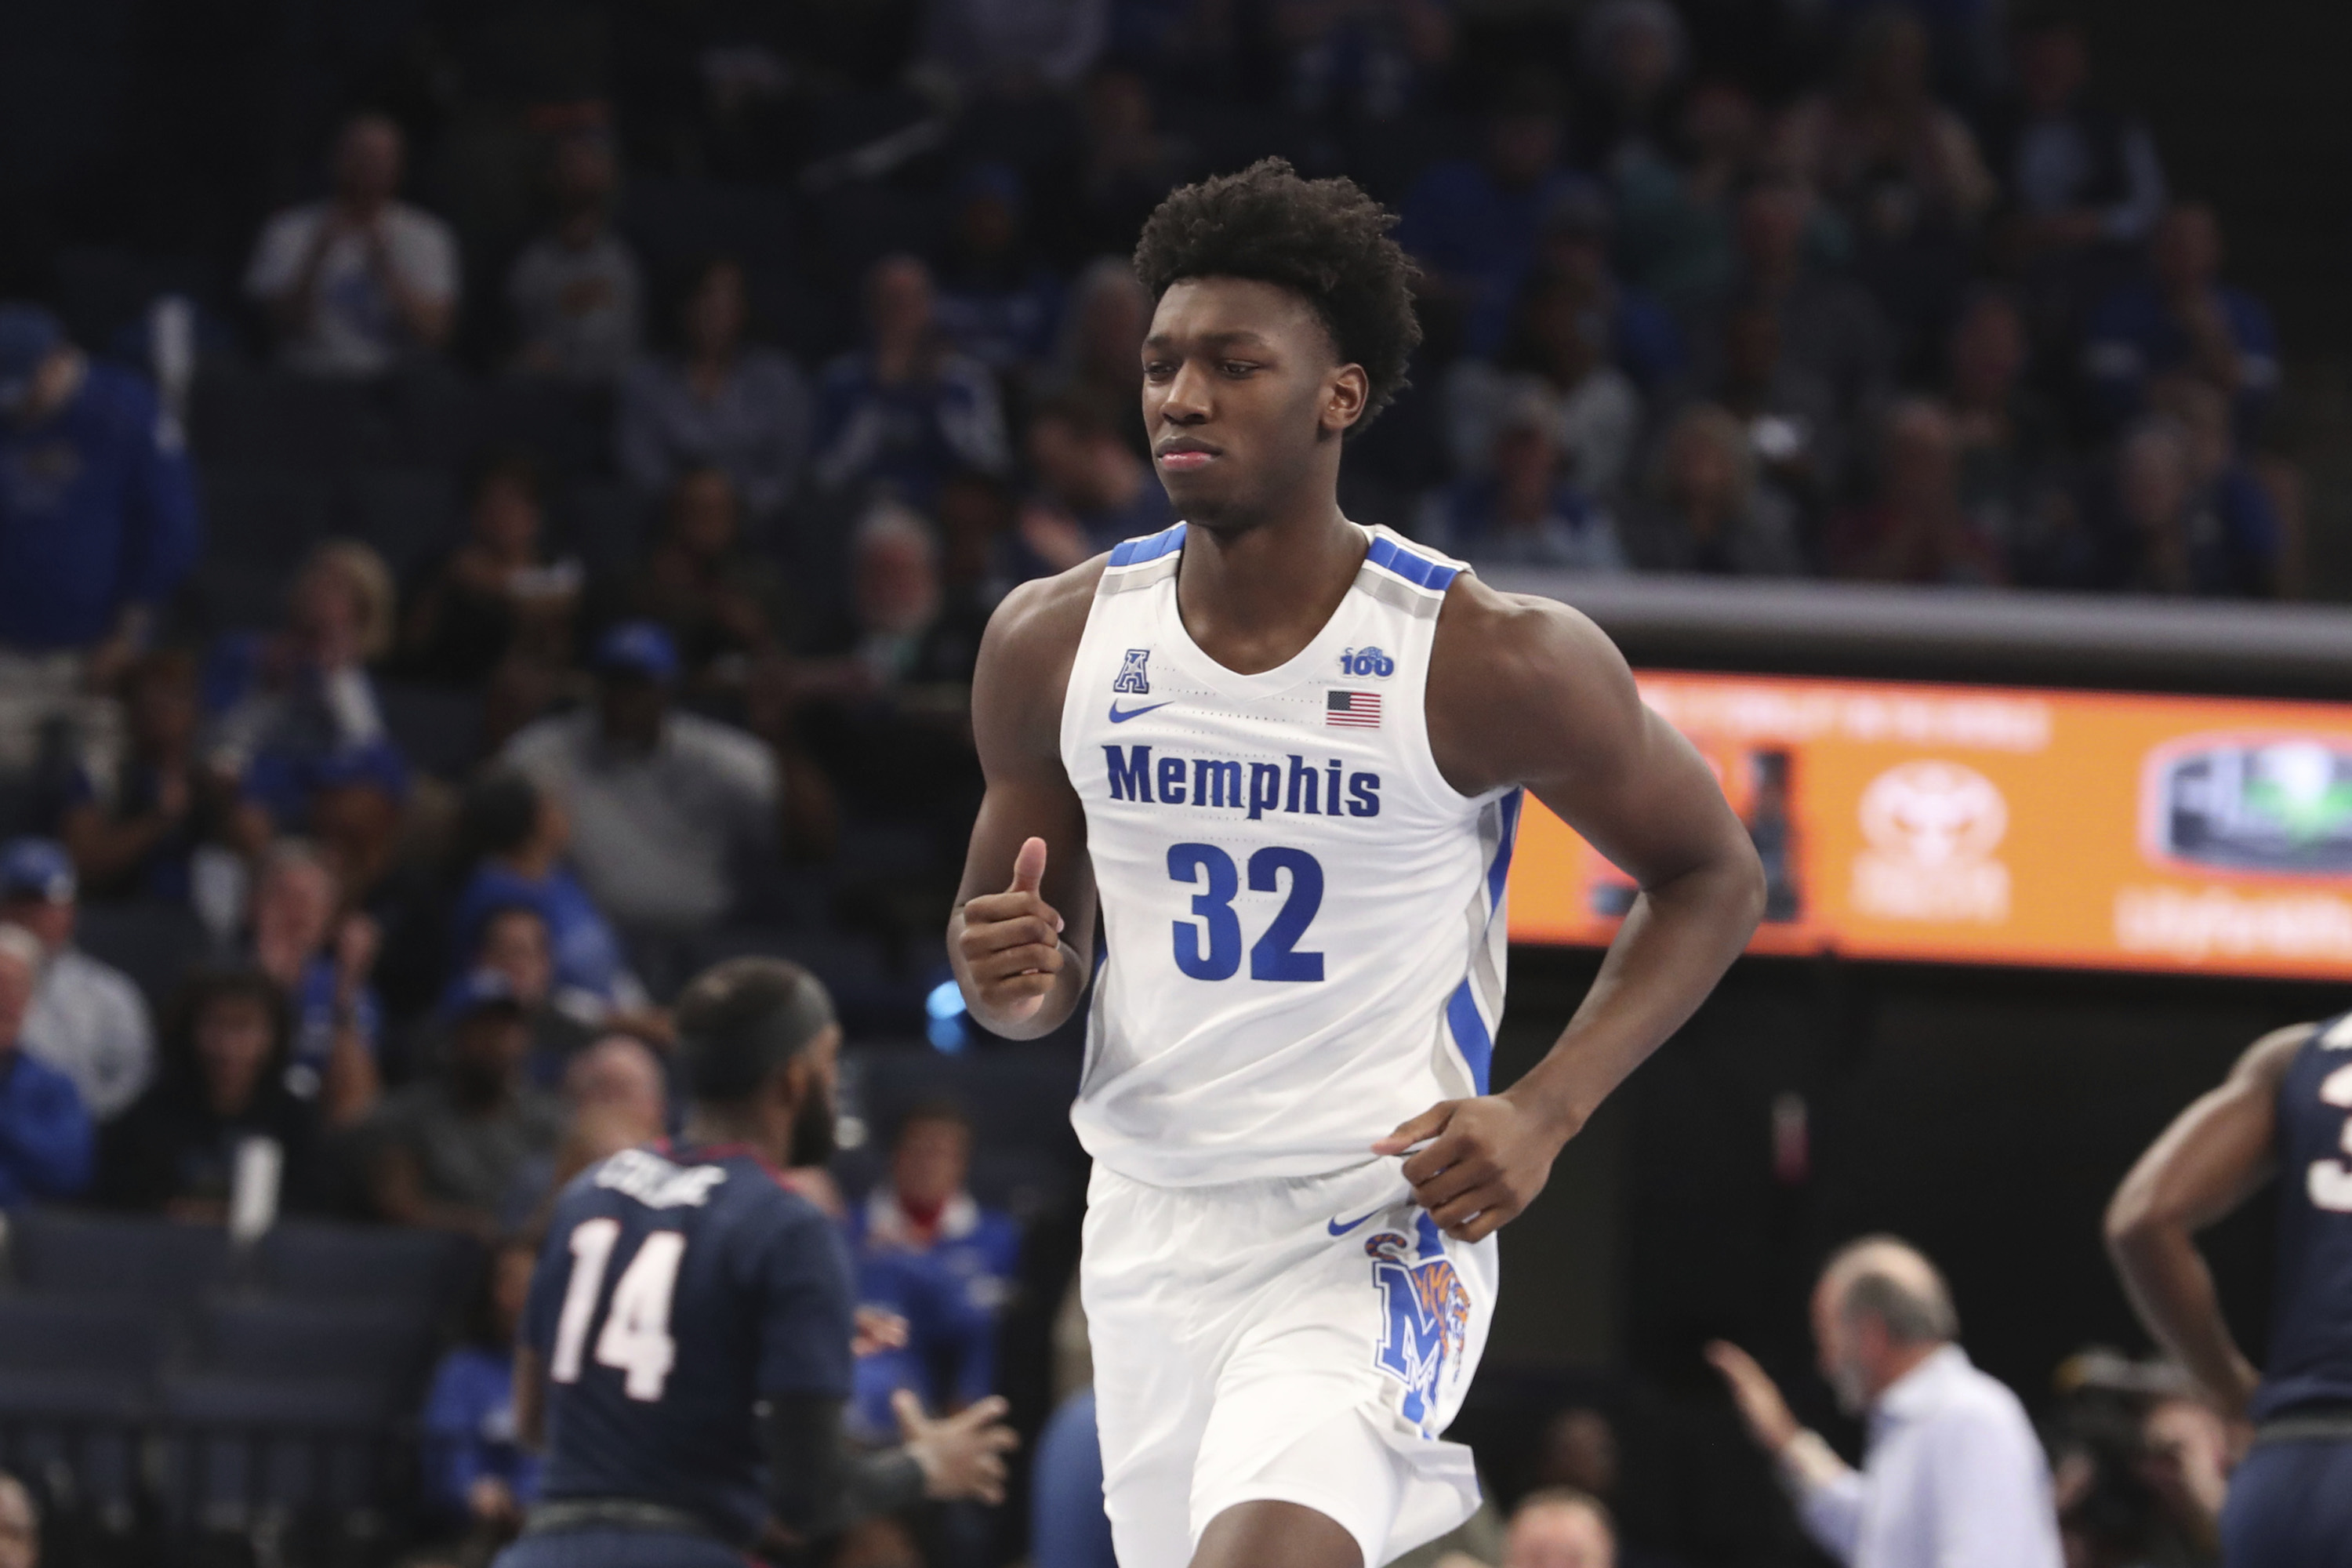 James Wiseman in the first half of an NCAA college basketball game Wednesday, Nov. 6, 2019, in Memphis, Tenn.